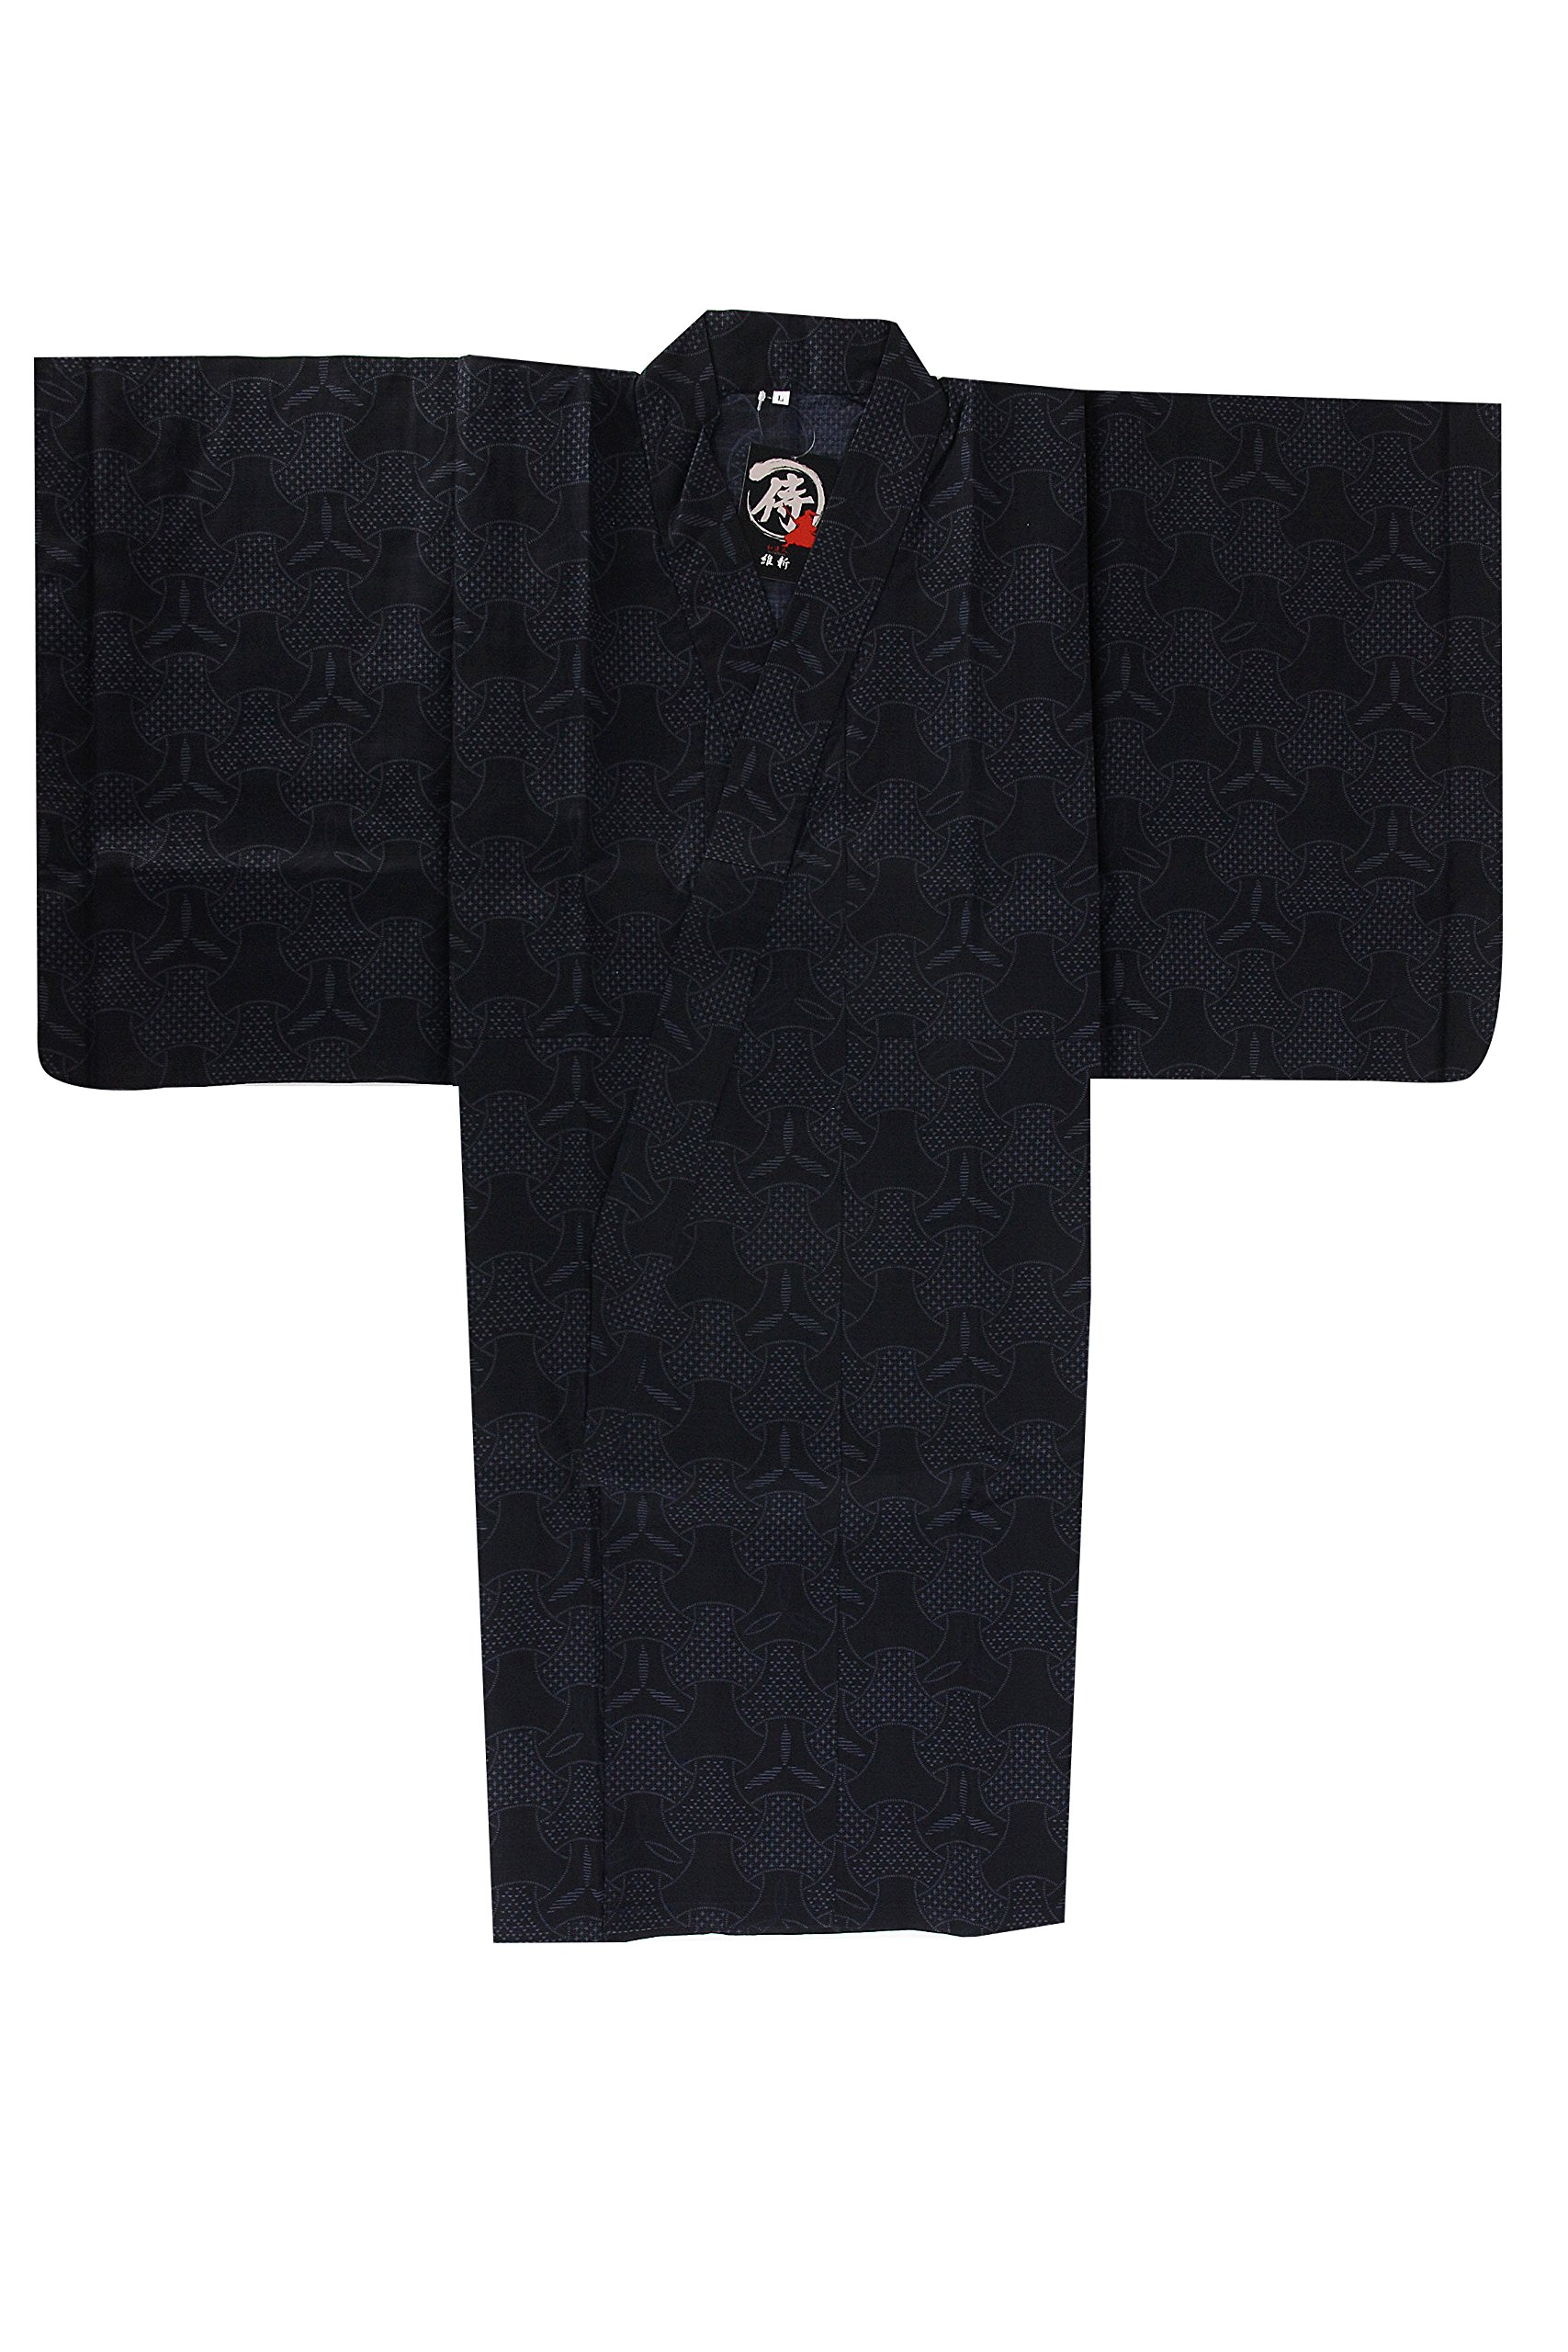 Edoten Japanese Samurai Hakama Uniform Shirt Tops 1773NV XL